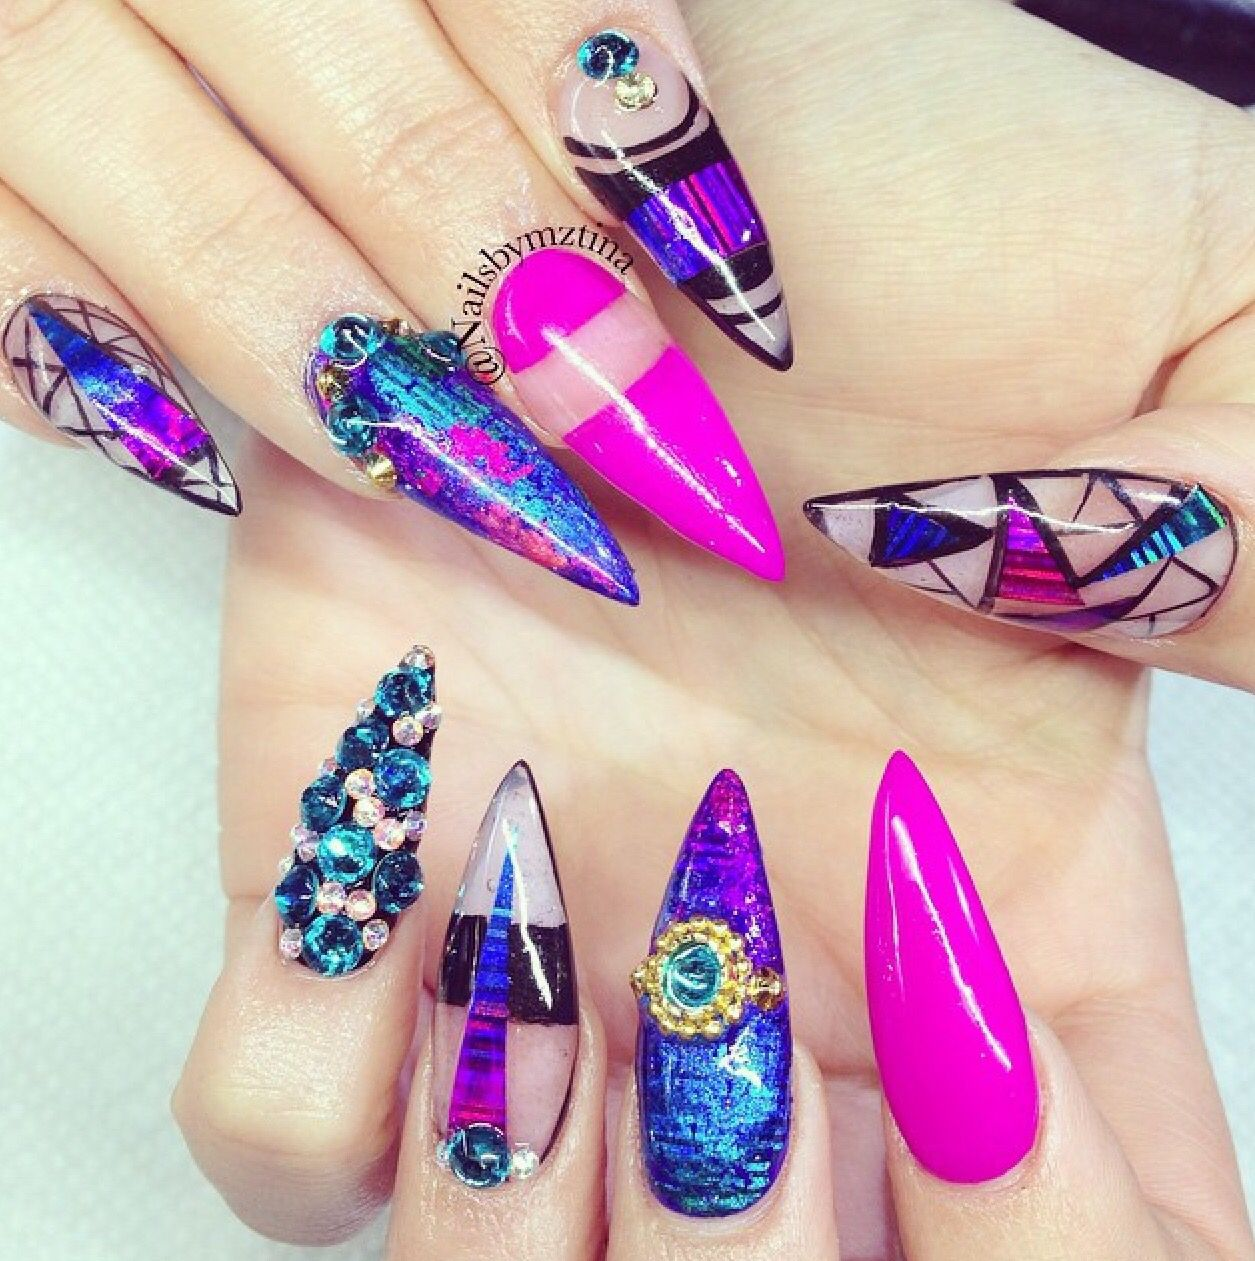 Jazzy Nails   Artists that inspire   Pinterest   Fabulous nails ...